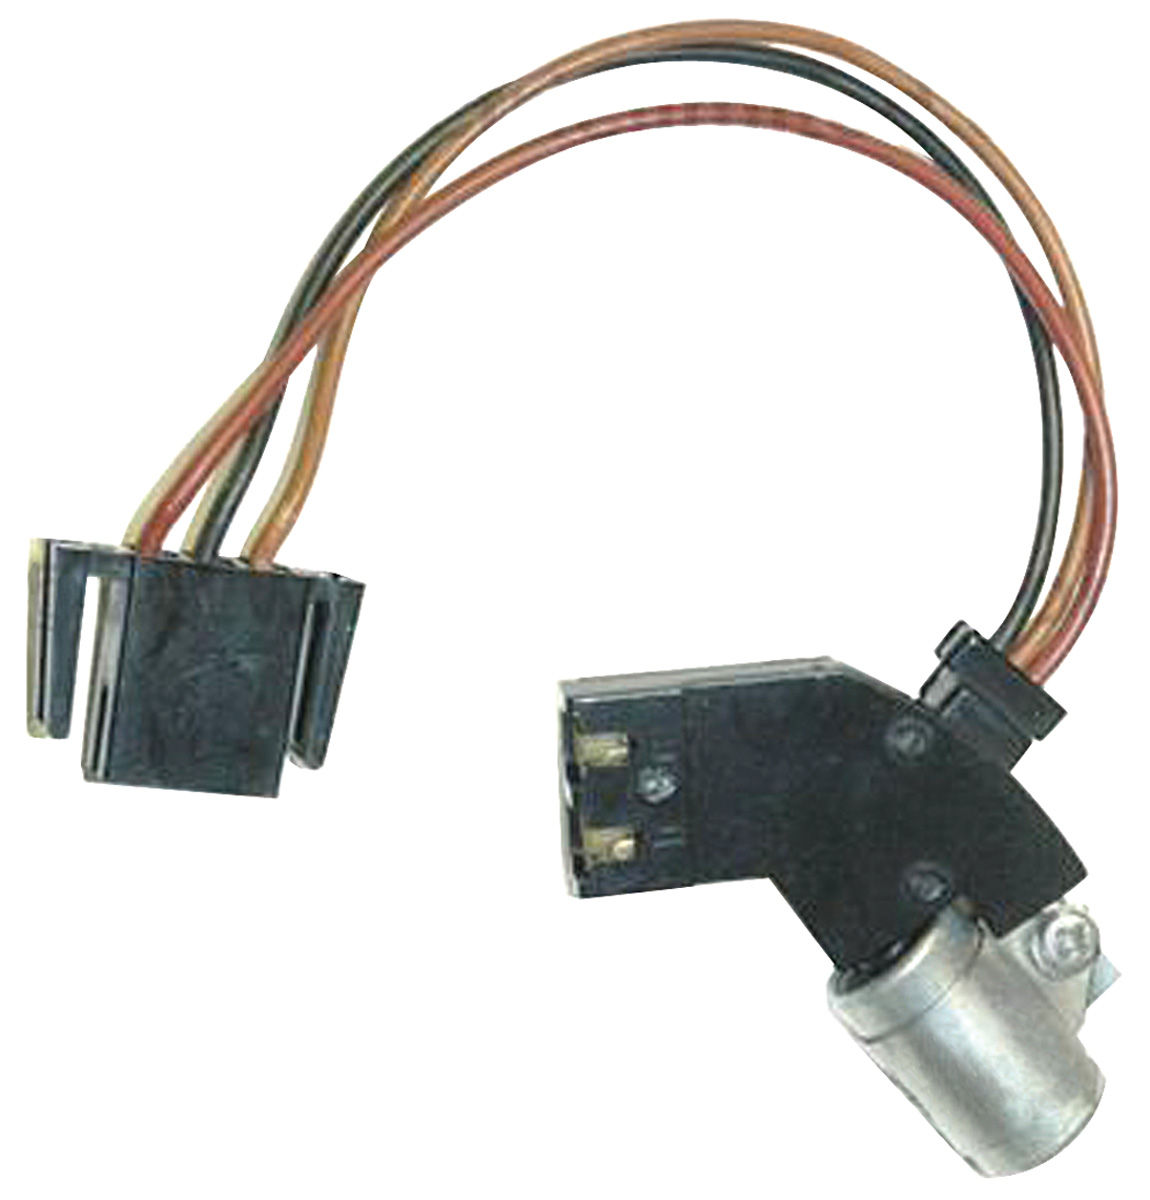 1892265 lrg lectric limited 1978 88 monte carlo ignition module to coil monte carlo wiring harness at bayanpartner.co